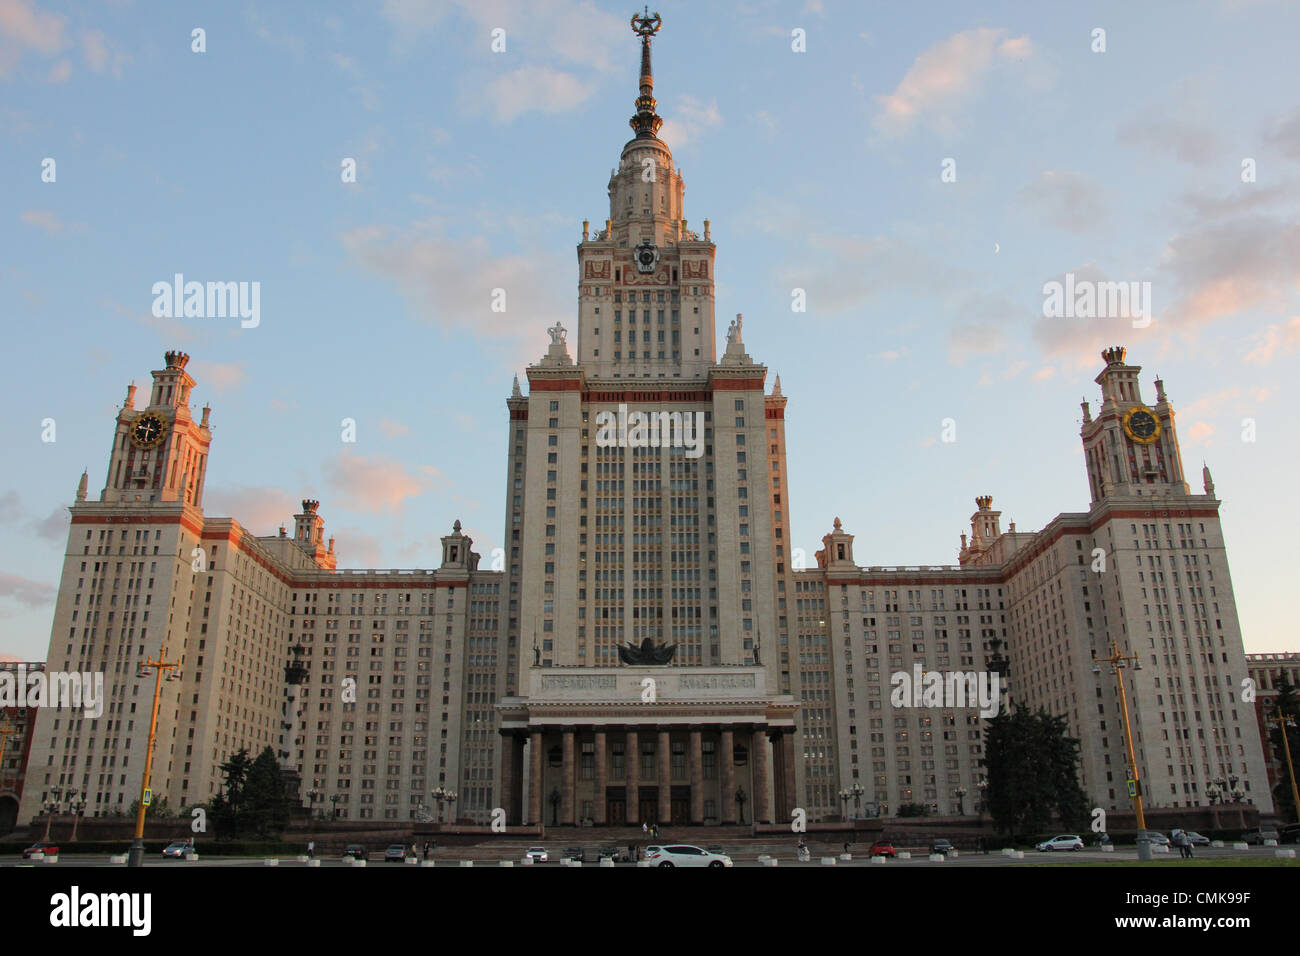 May 26, 2012 - Moscow, Russia - Stalinist architecture (Stalin's Empire style or Stalin's Neo-renaissance), also Stock Photo